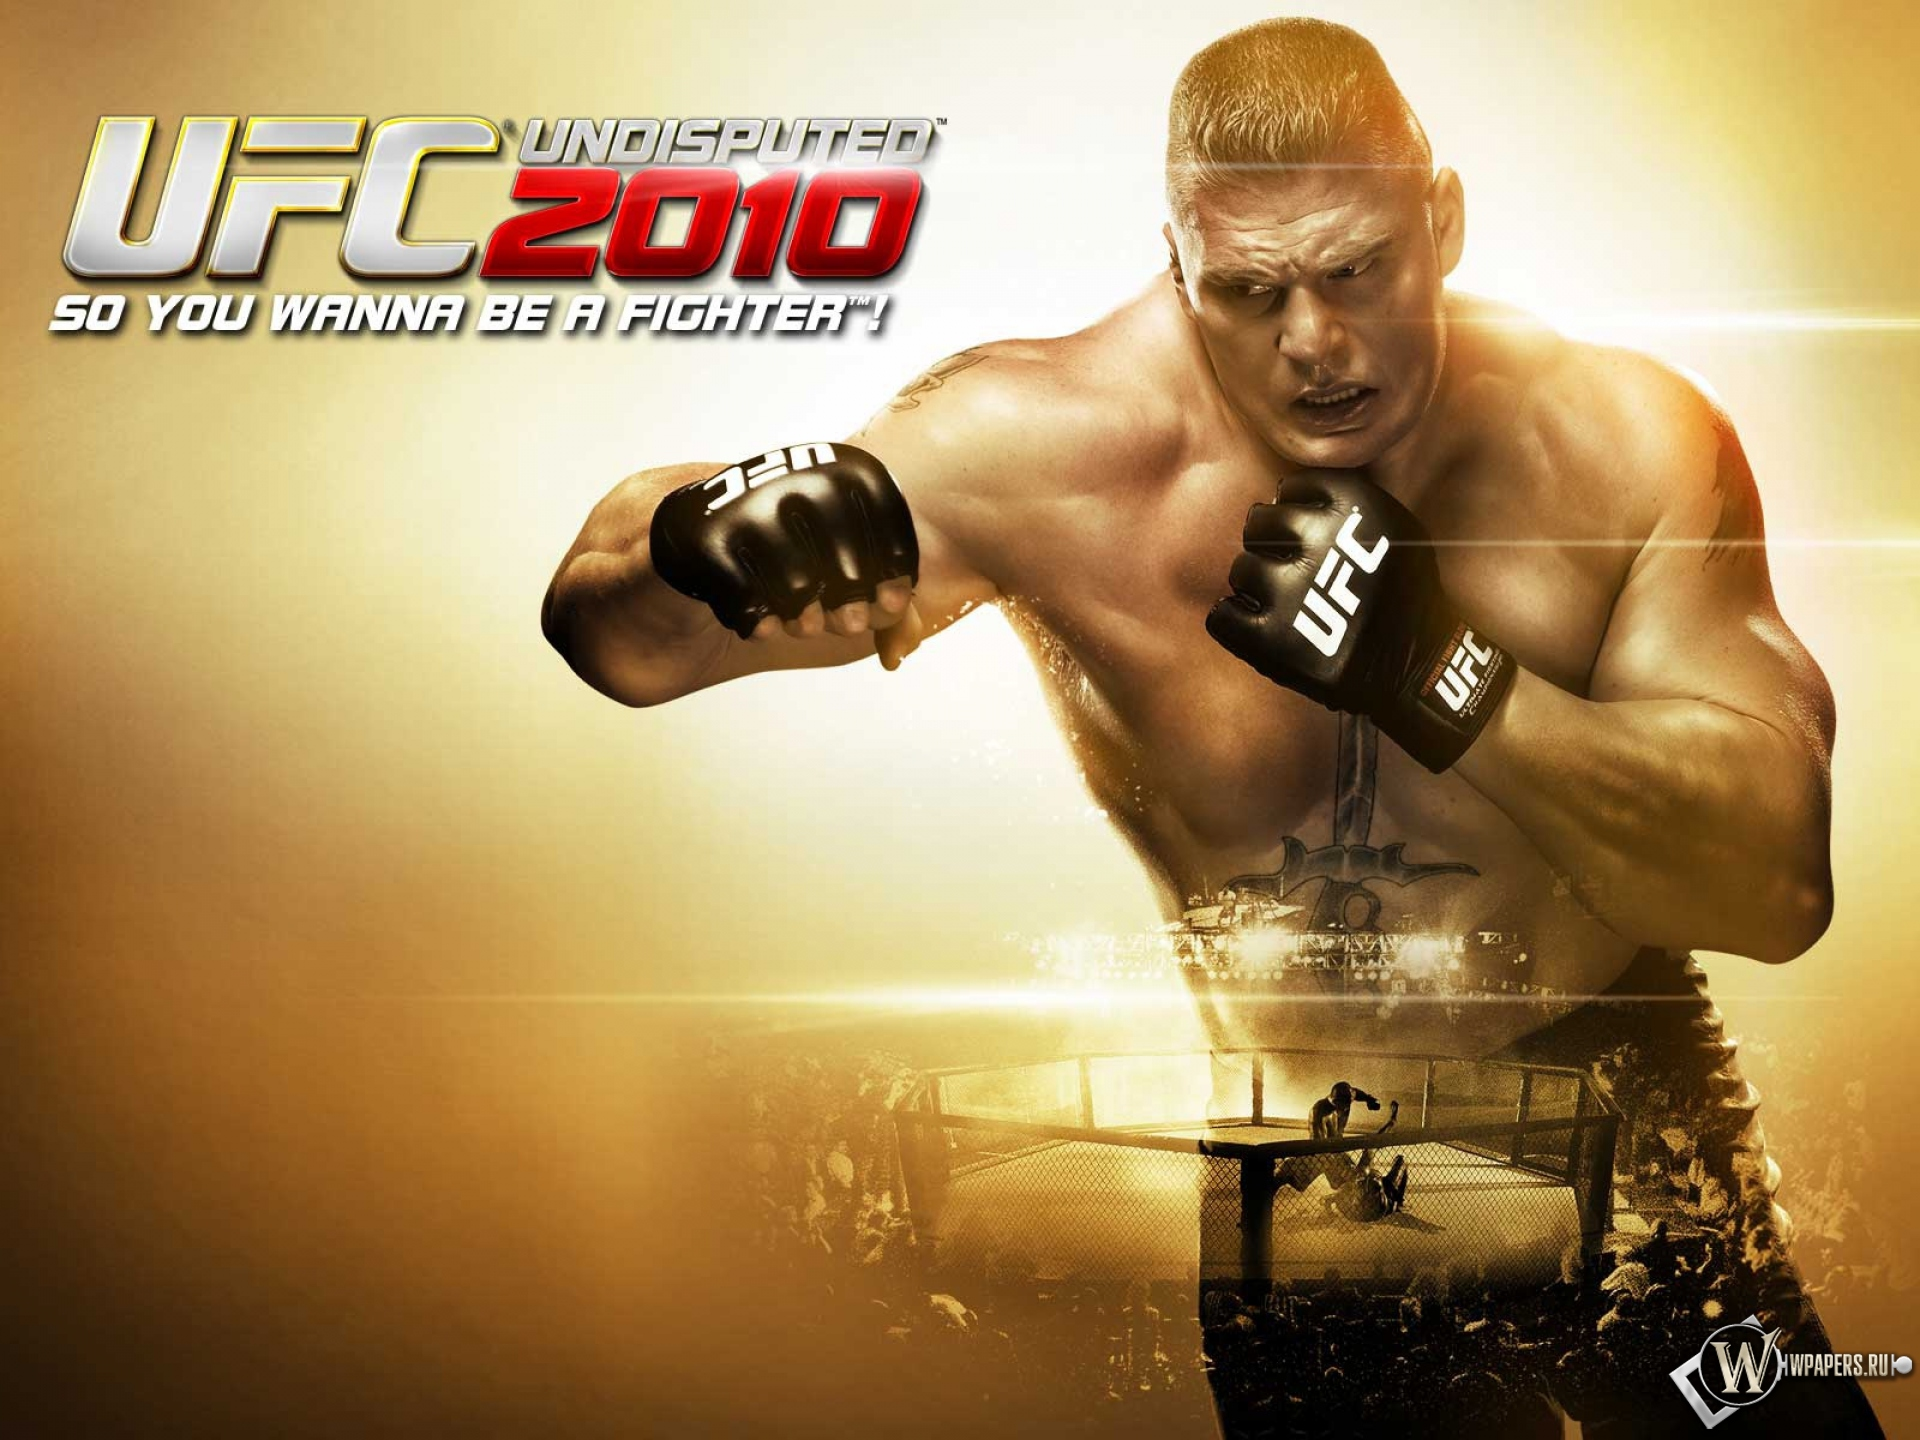 http://wpapers.ru/wallpapers/games/other-games/6653/1920x1440_UFC-2010.jpg